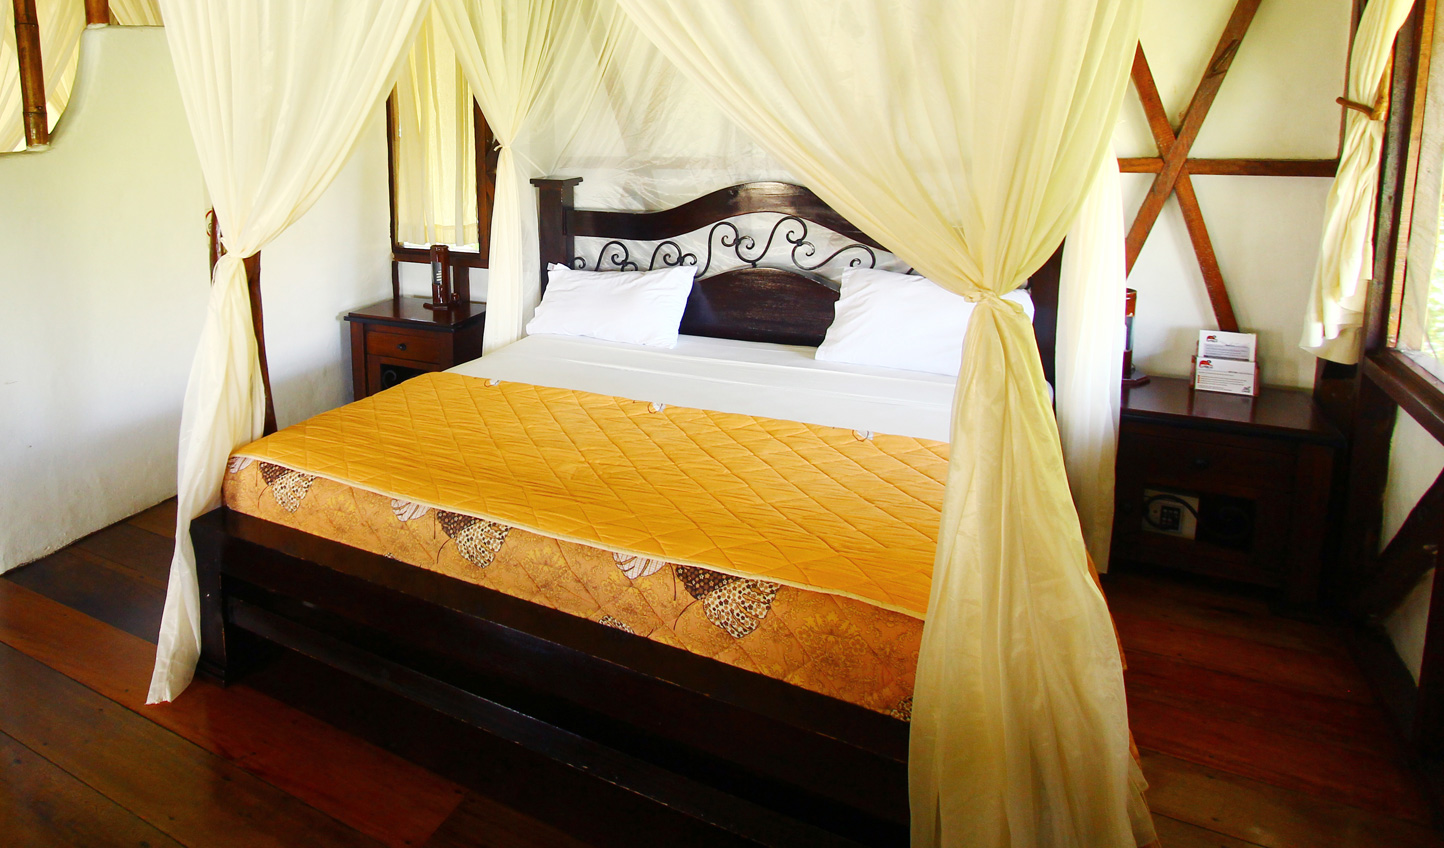 Traditional Amazonian touches without compromising on comfort